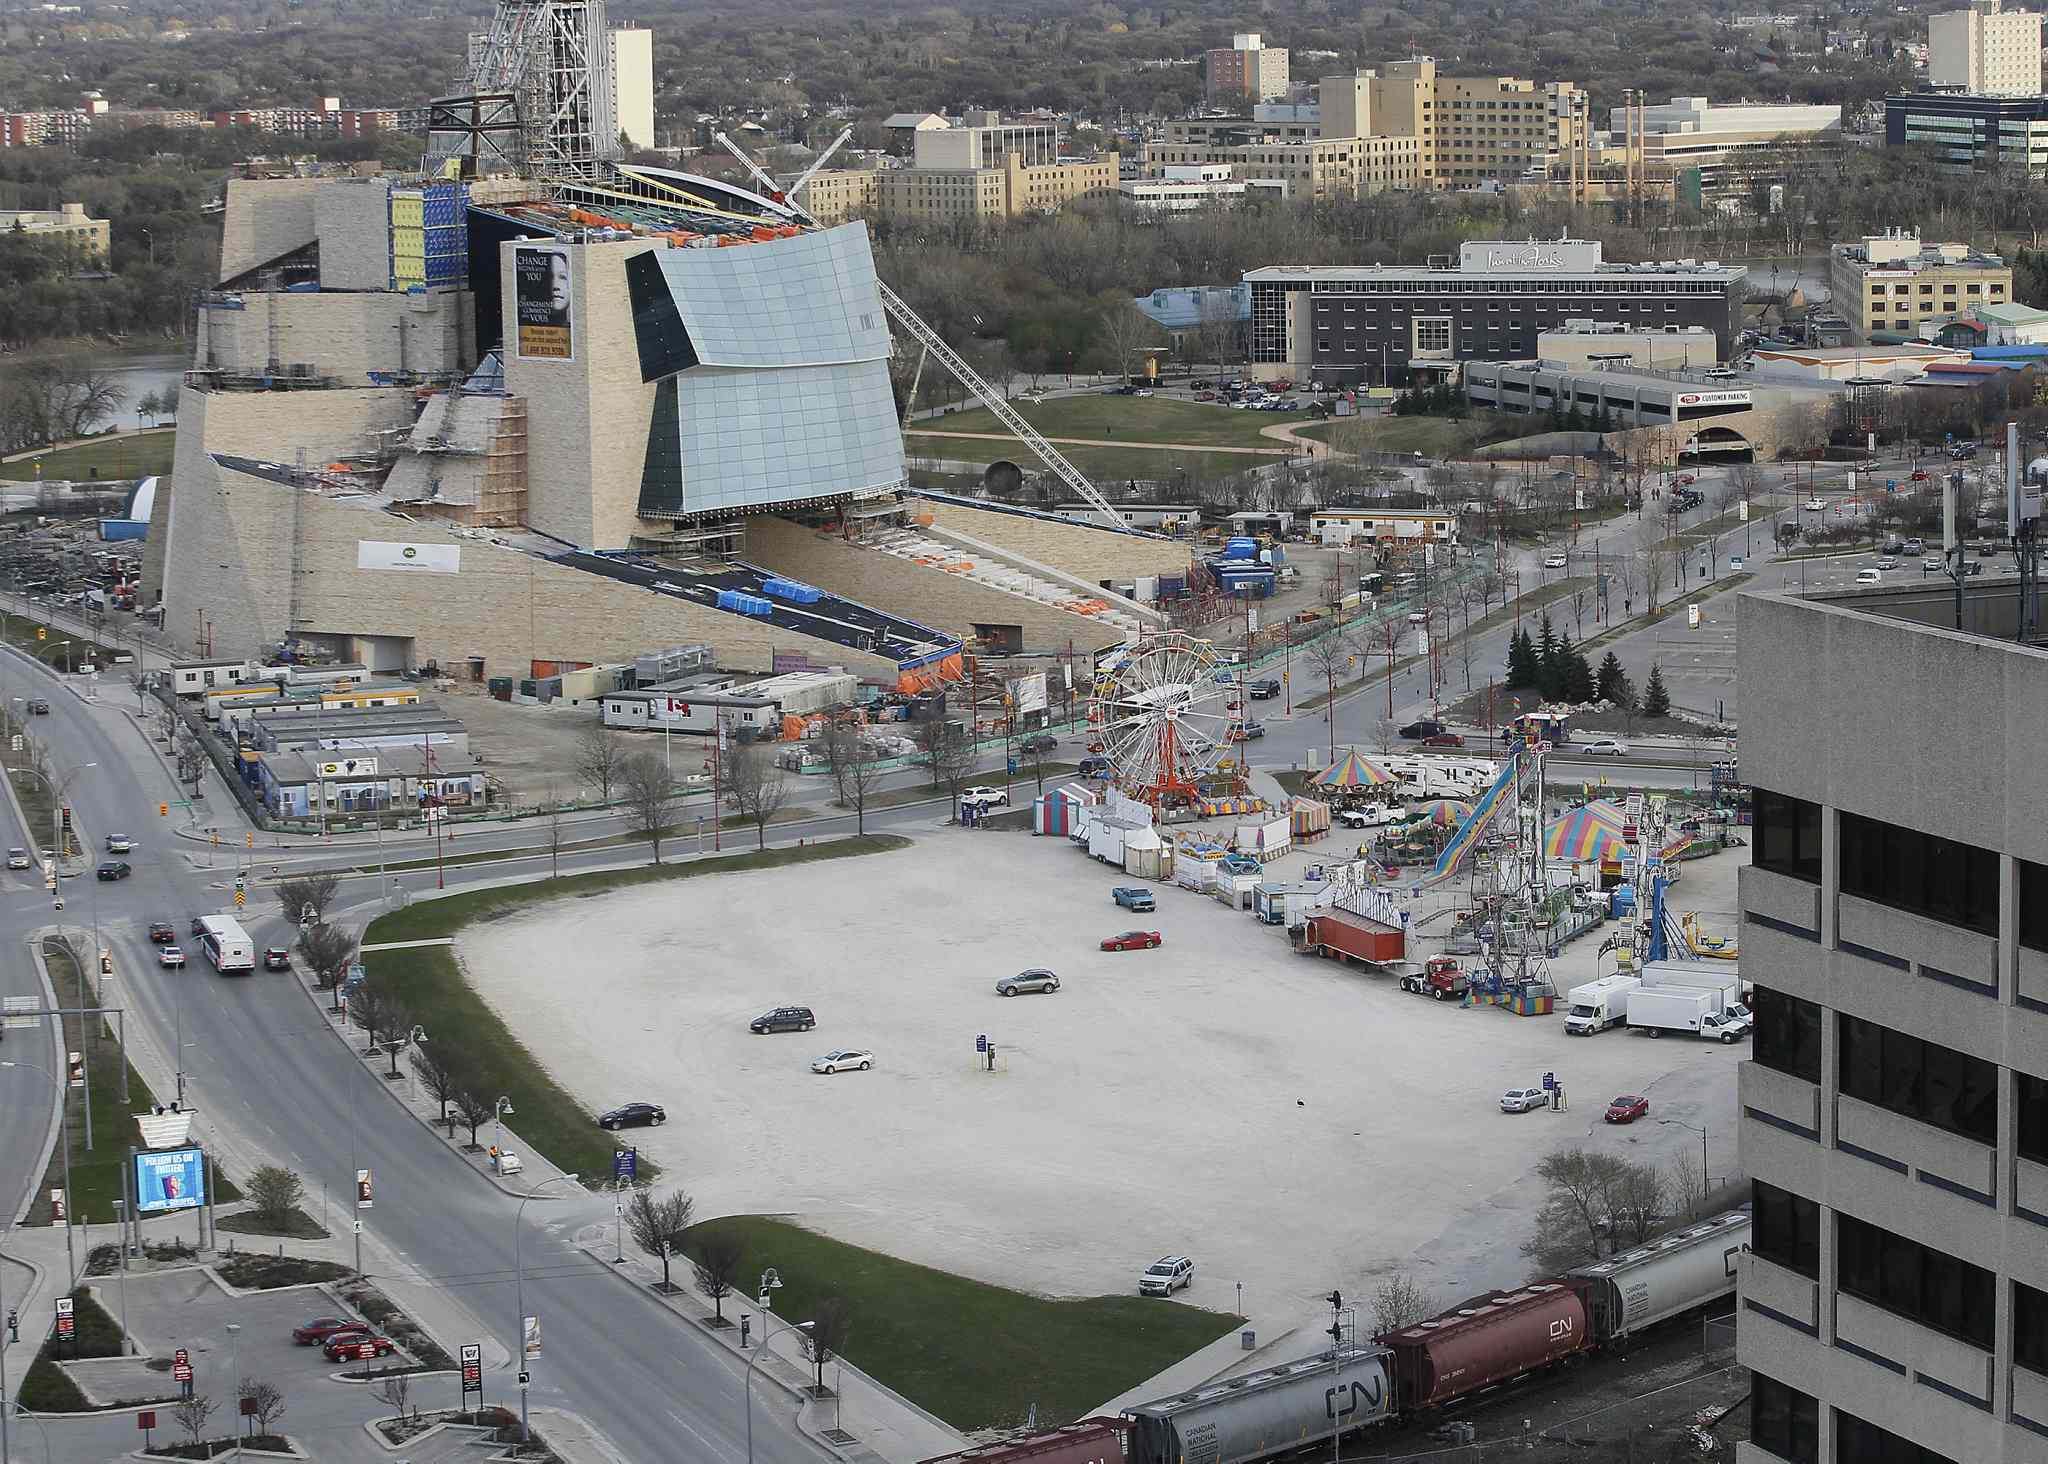 The Land at The Forks known as Parcel 4. Changes could be made to the plan for its development depending on feedback, officials say.